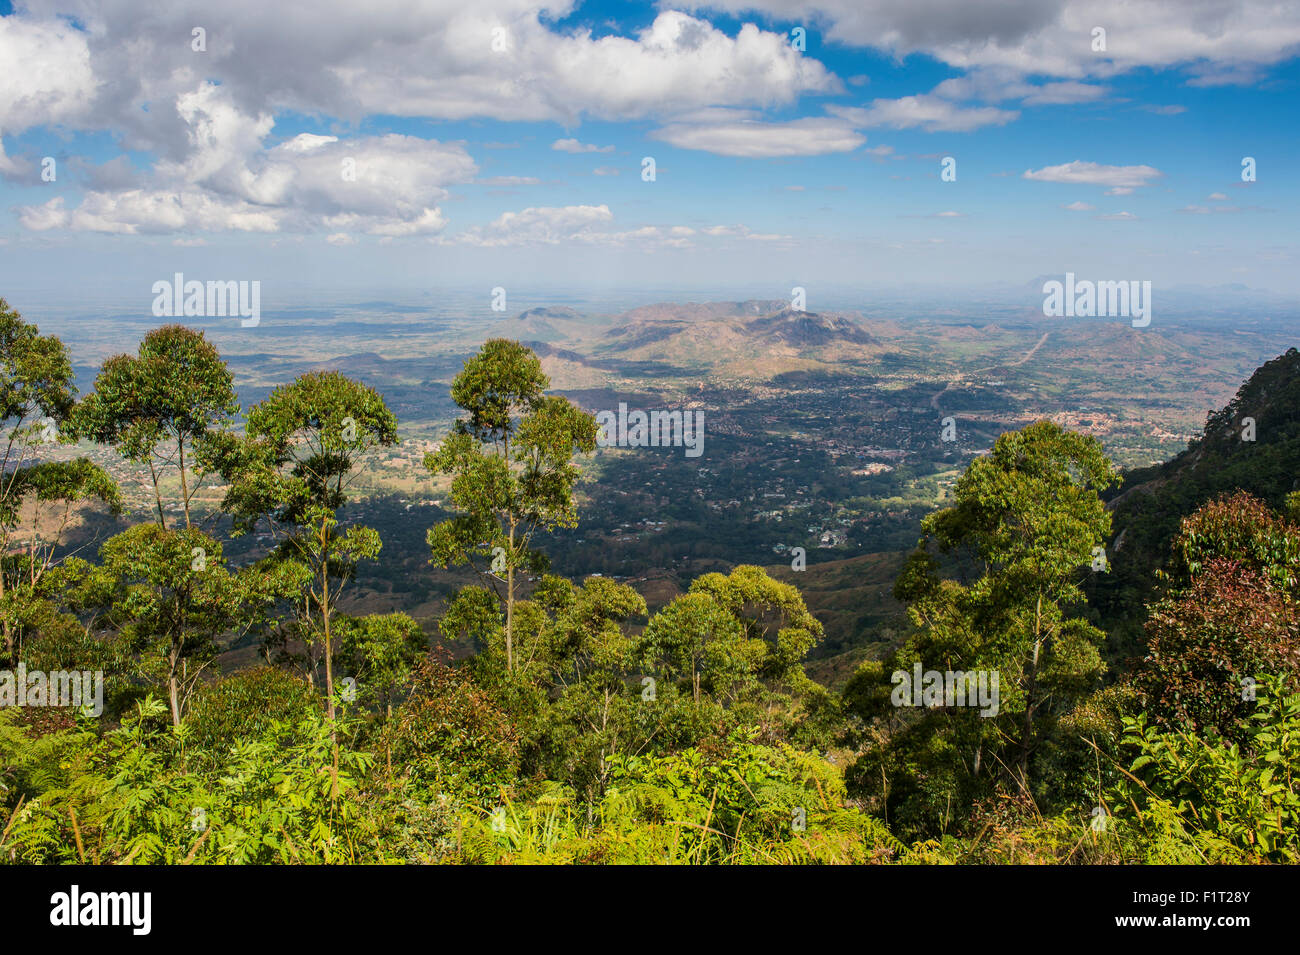 View over Zomba and the highlands from the Zomba Plateau, Malawi, Africa - Stock Image